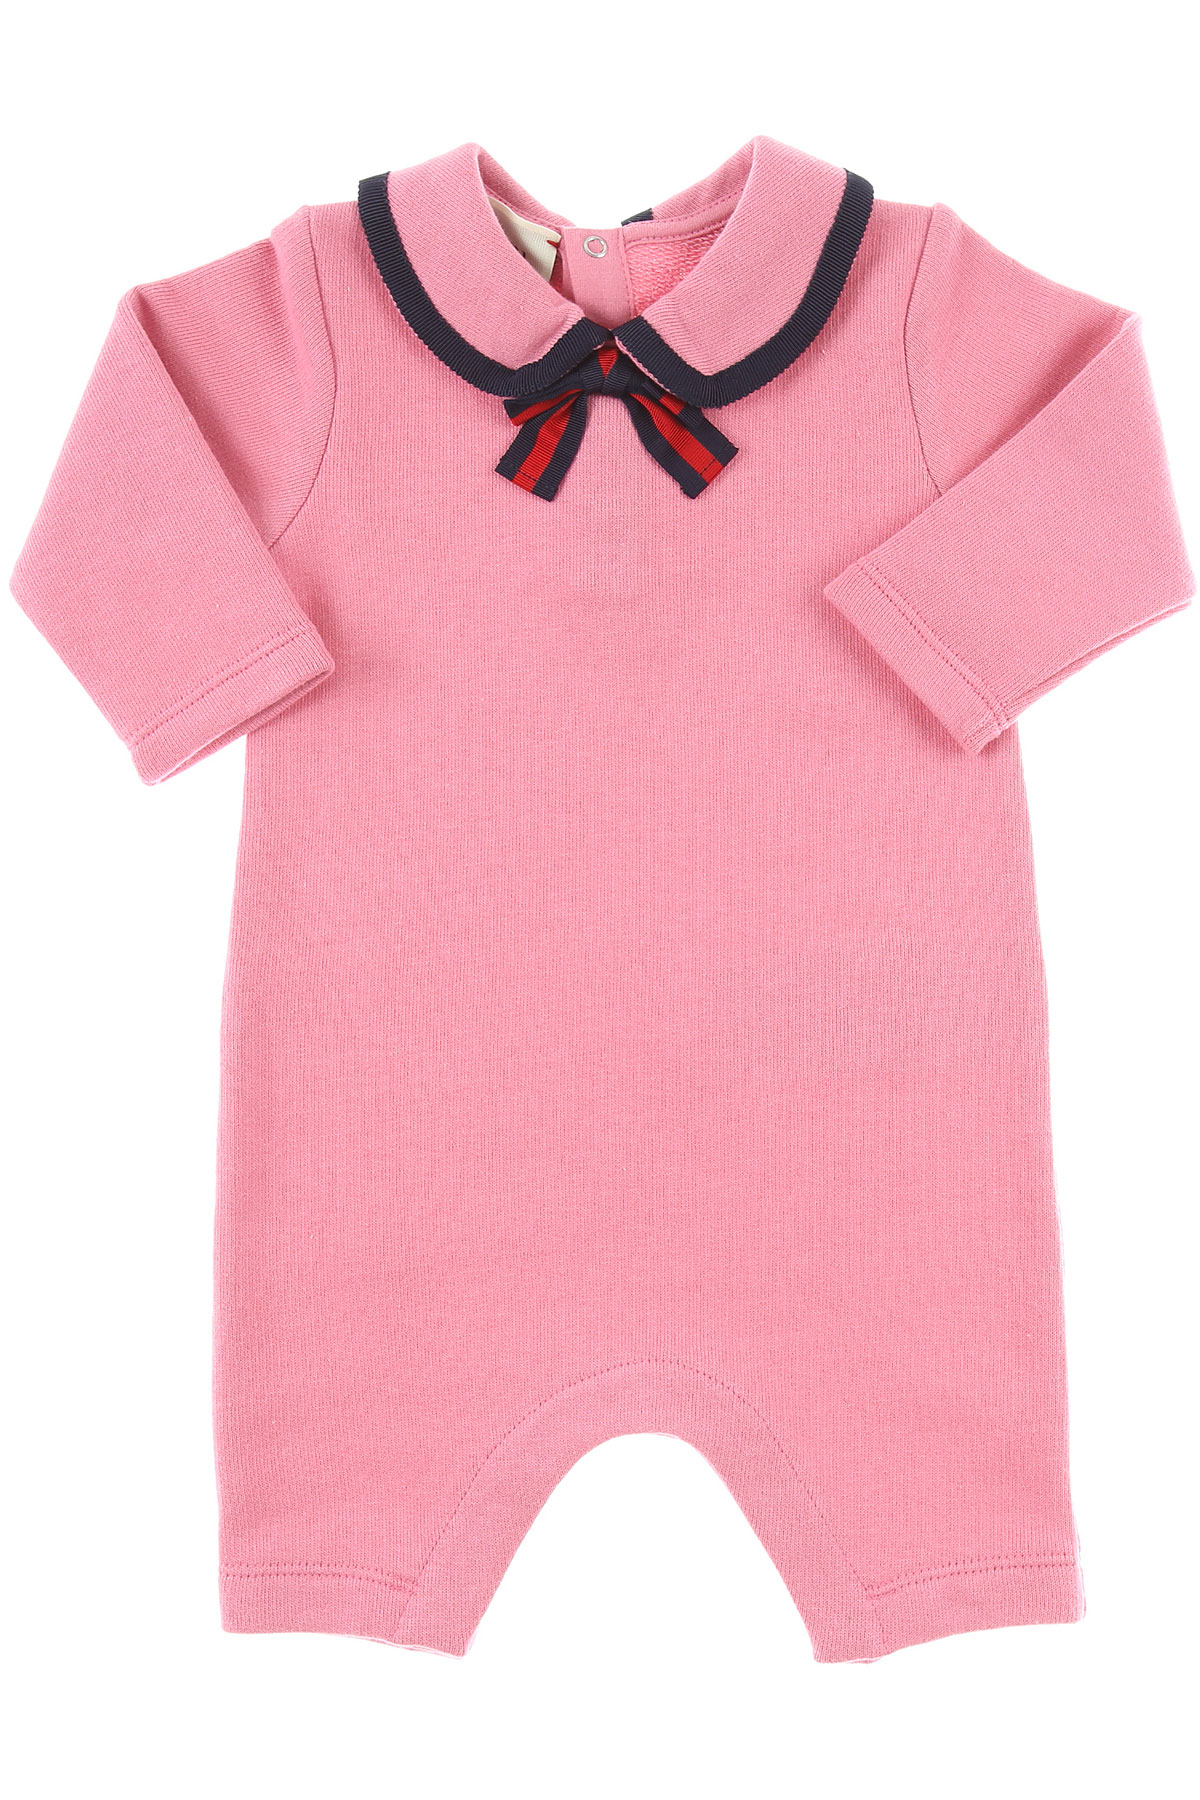 Image of Gucci Baby Clothing, Pink, Cotton, 2017, 1M 3M 6M